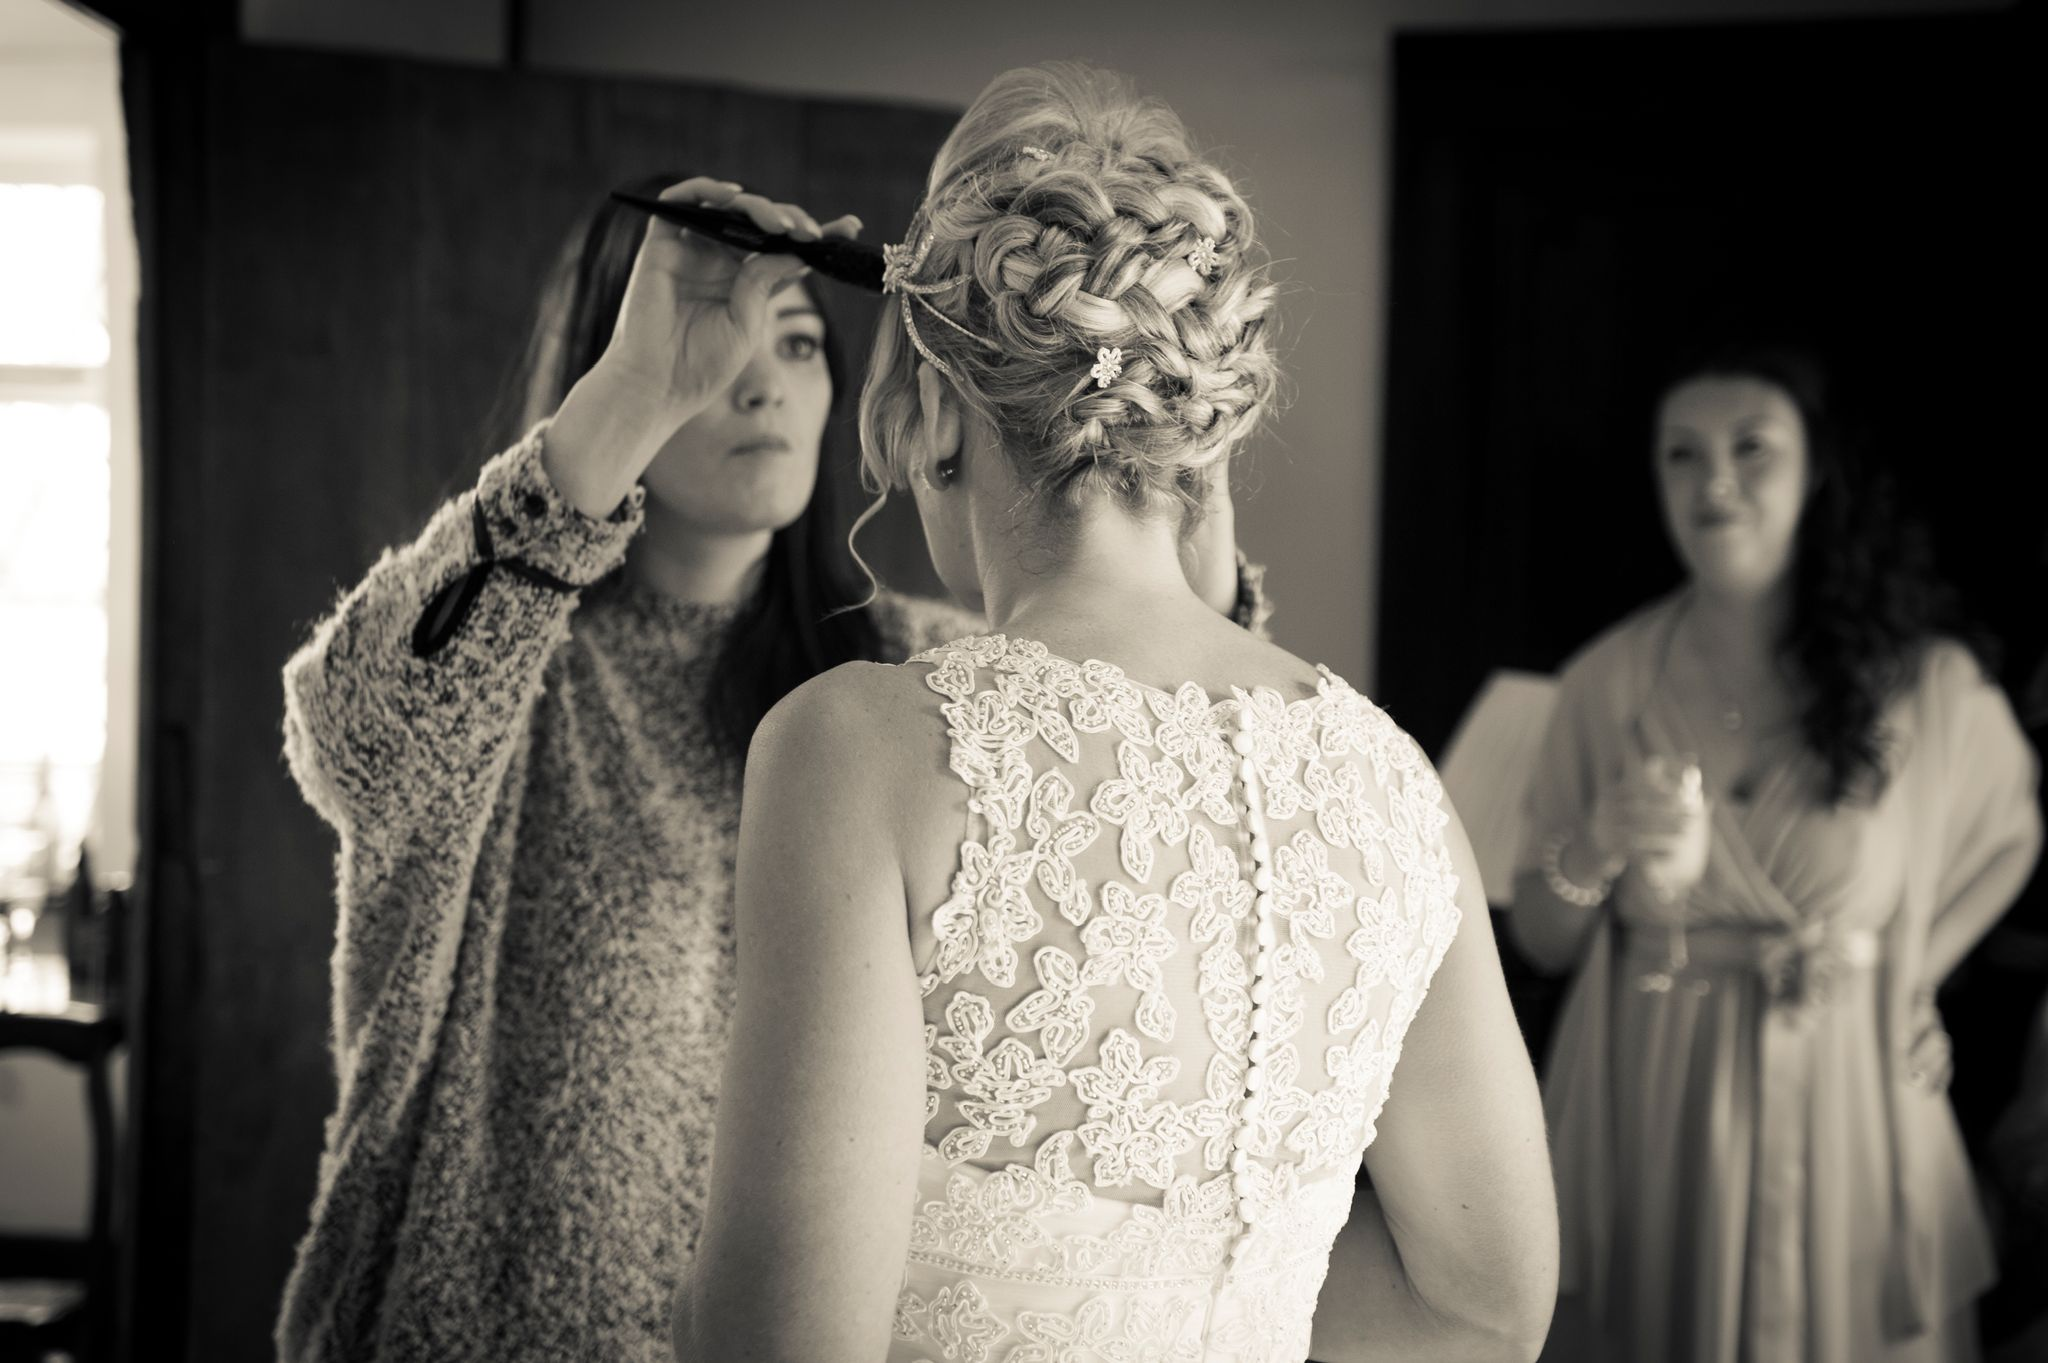 preparation of the bride